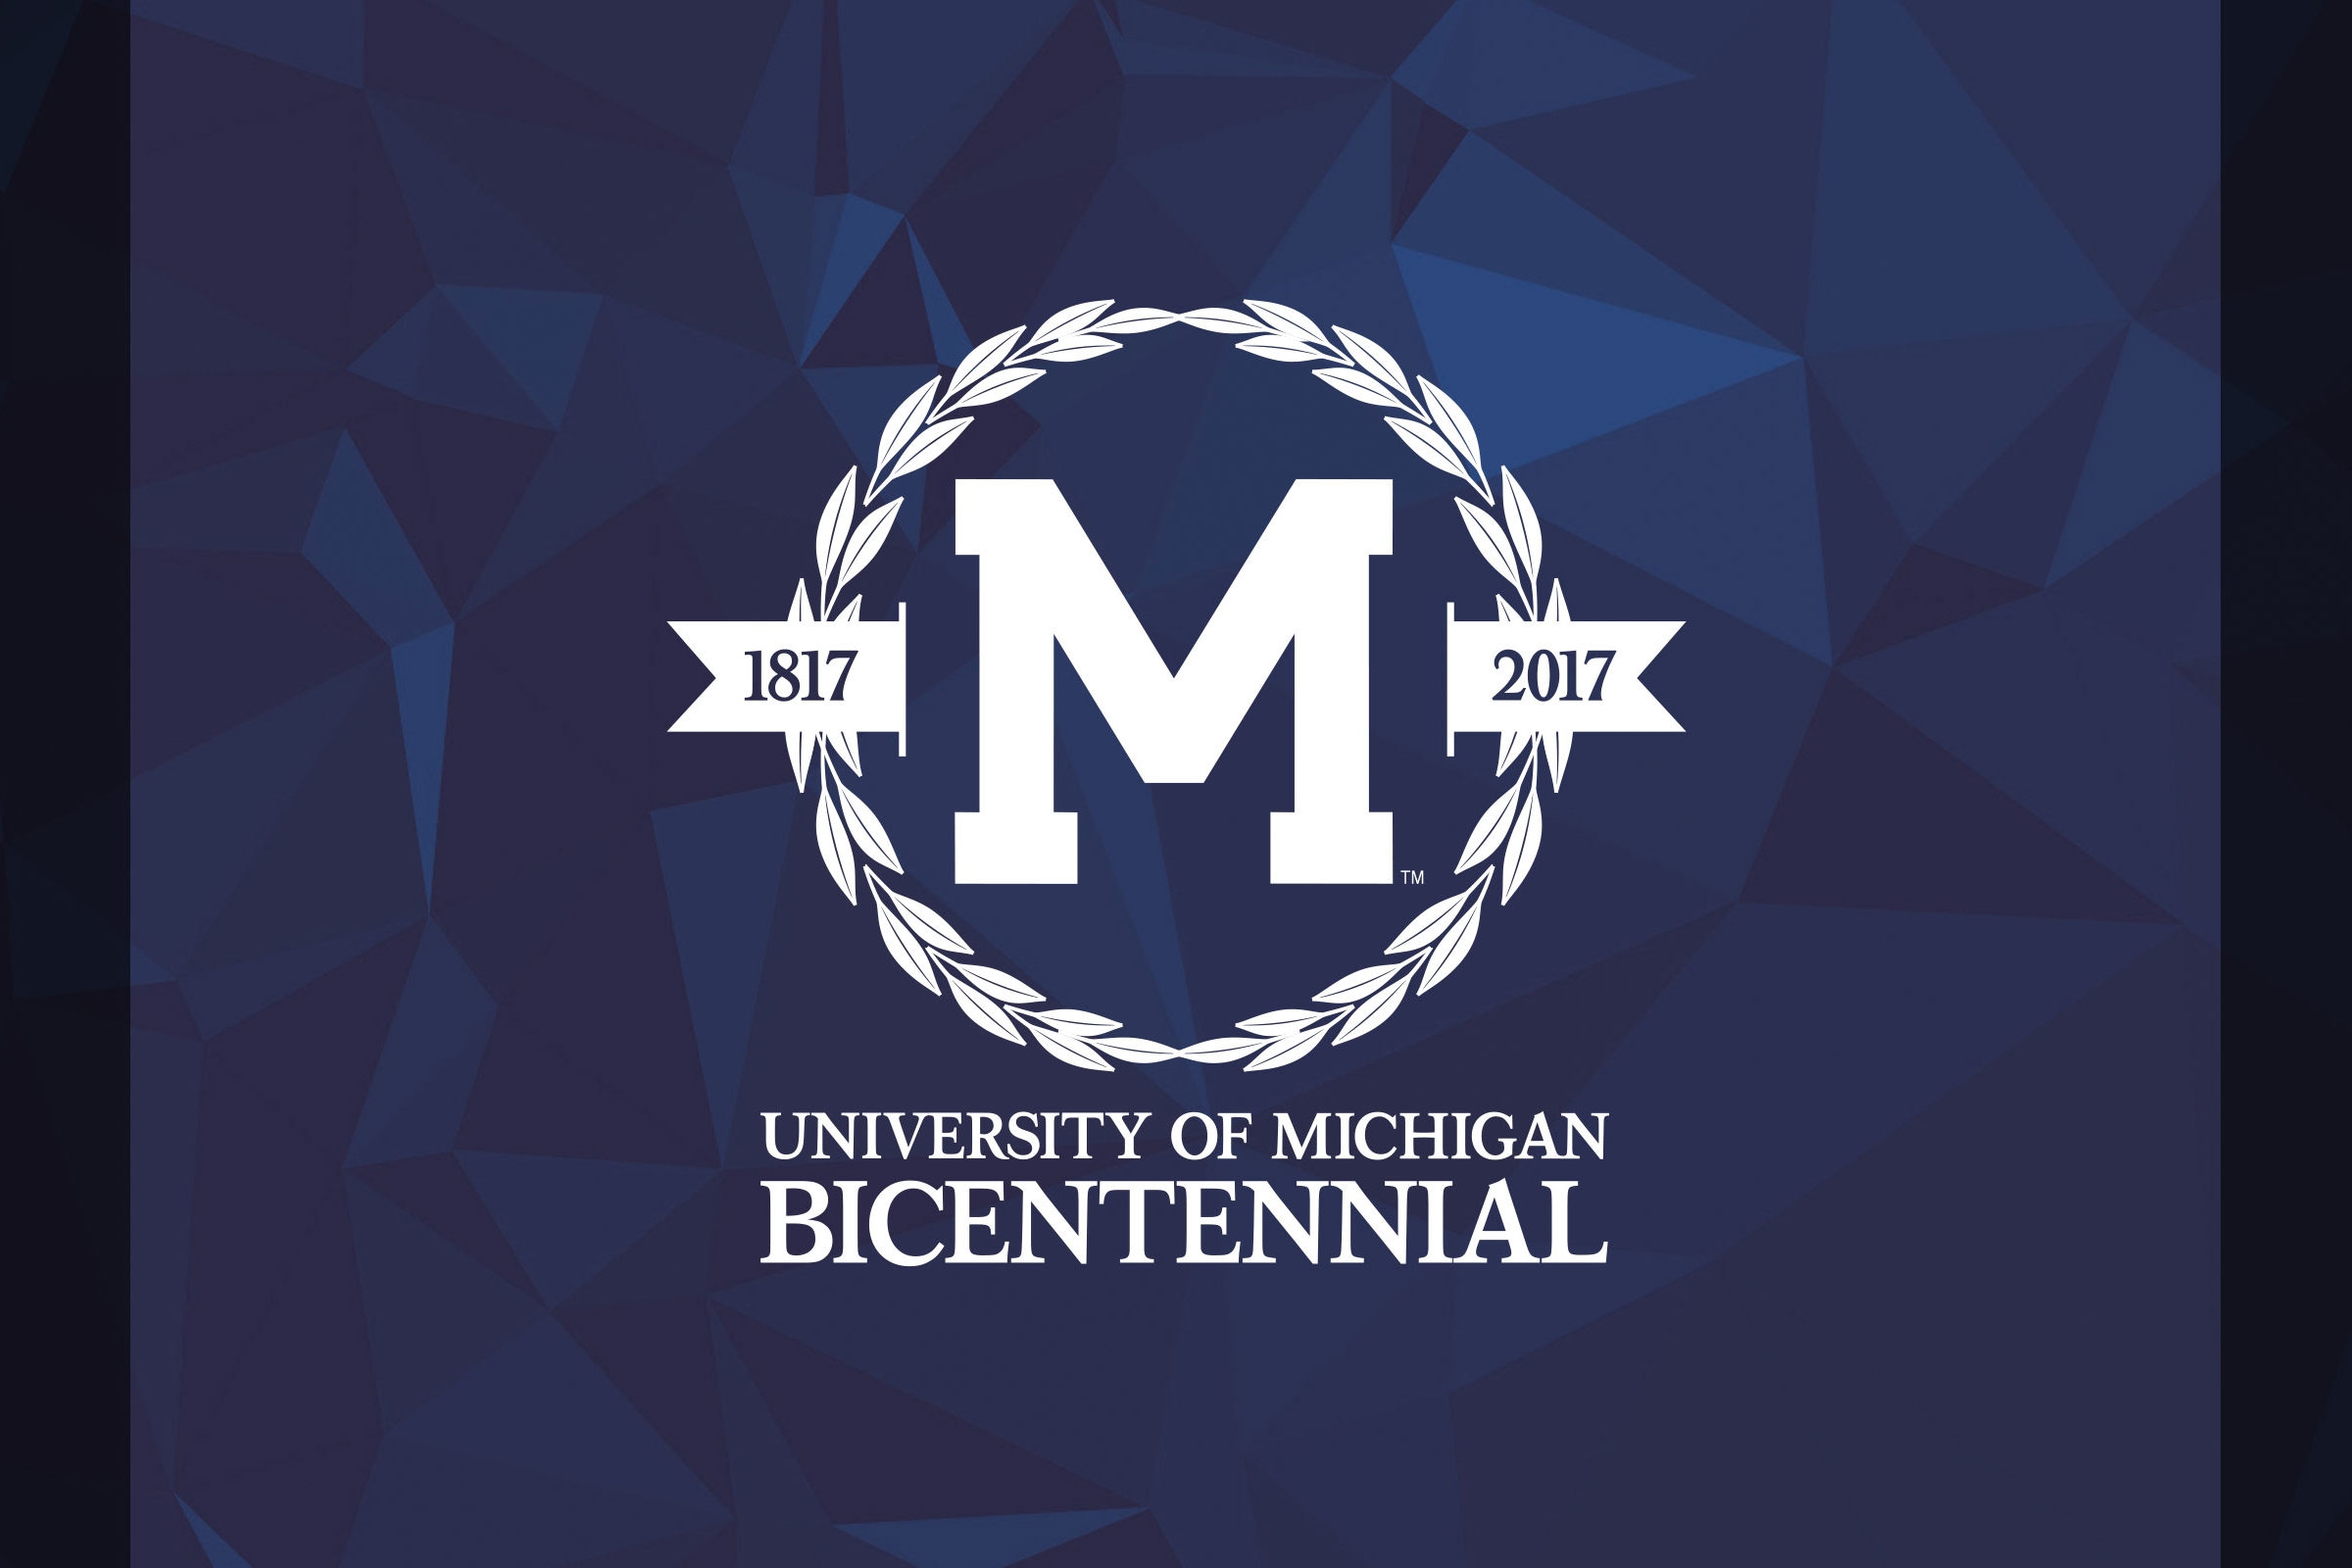 Michigan Bicentennial logo